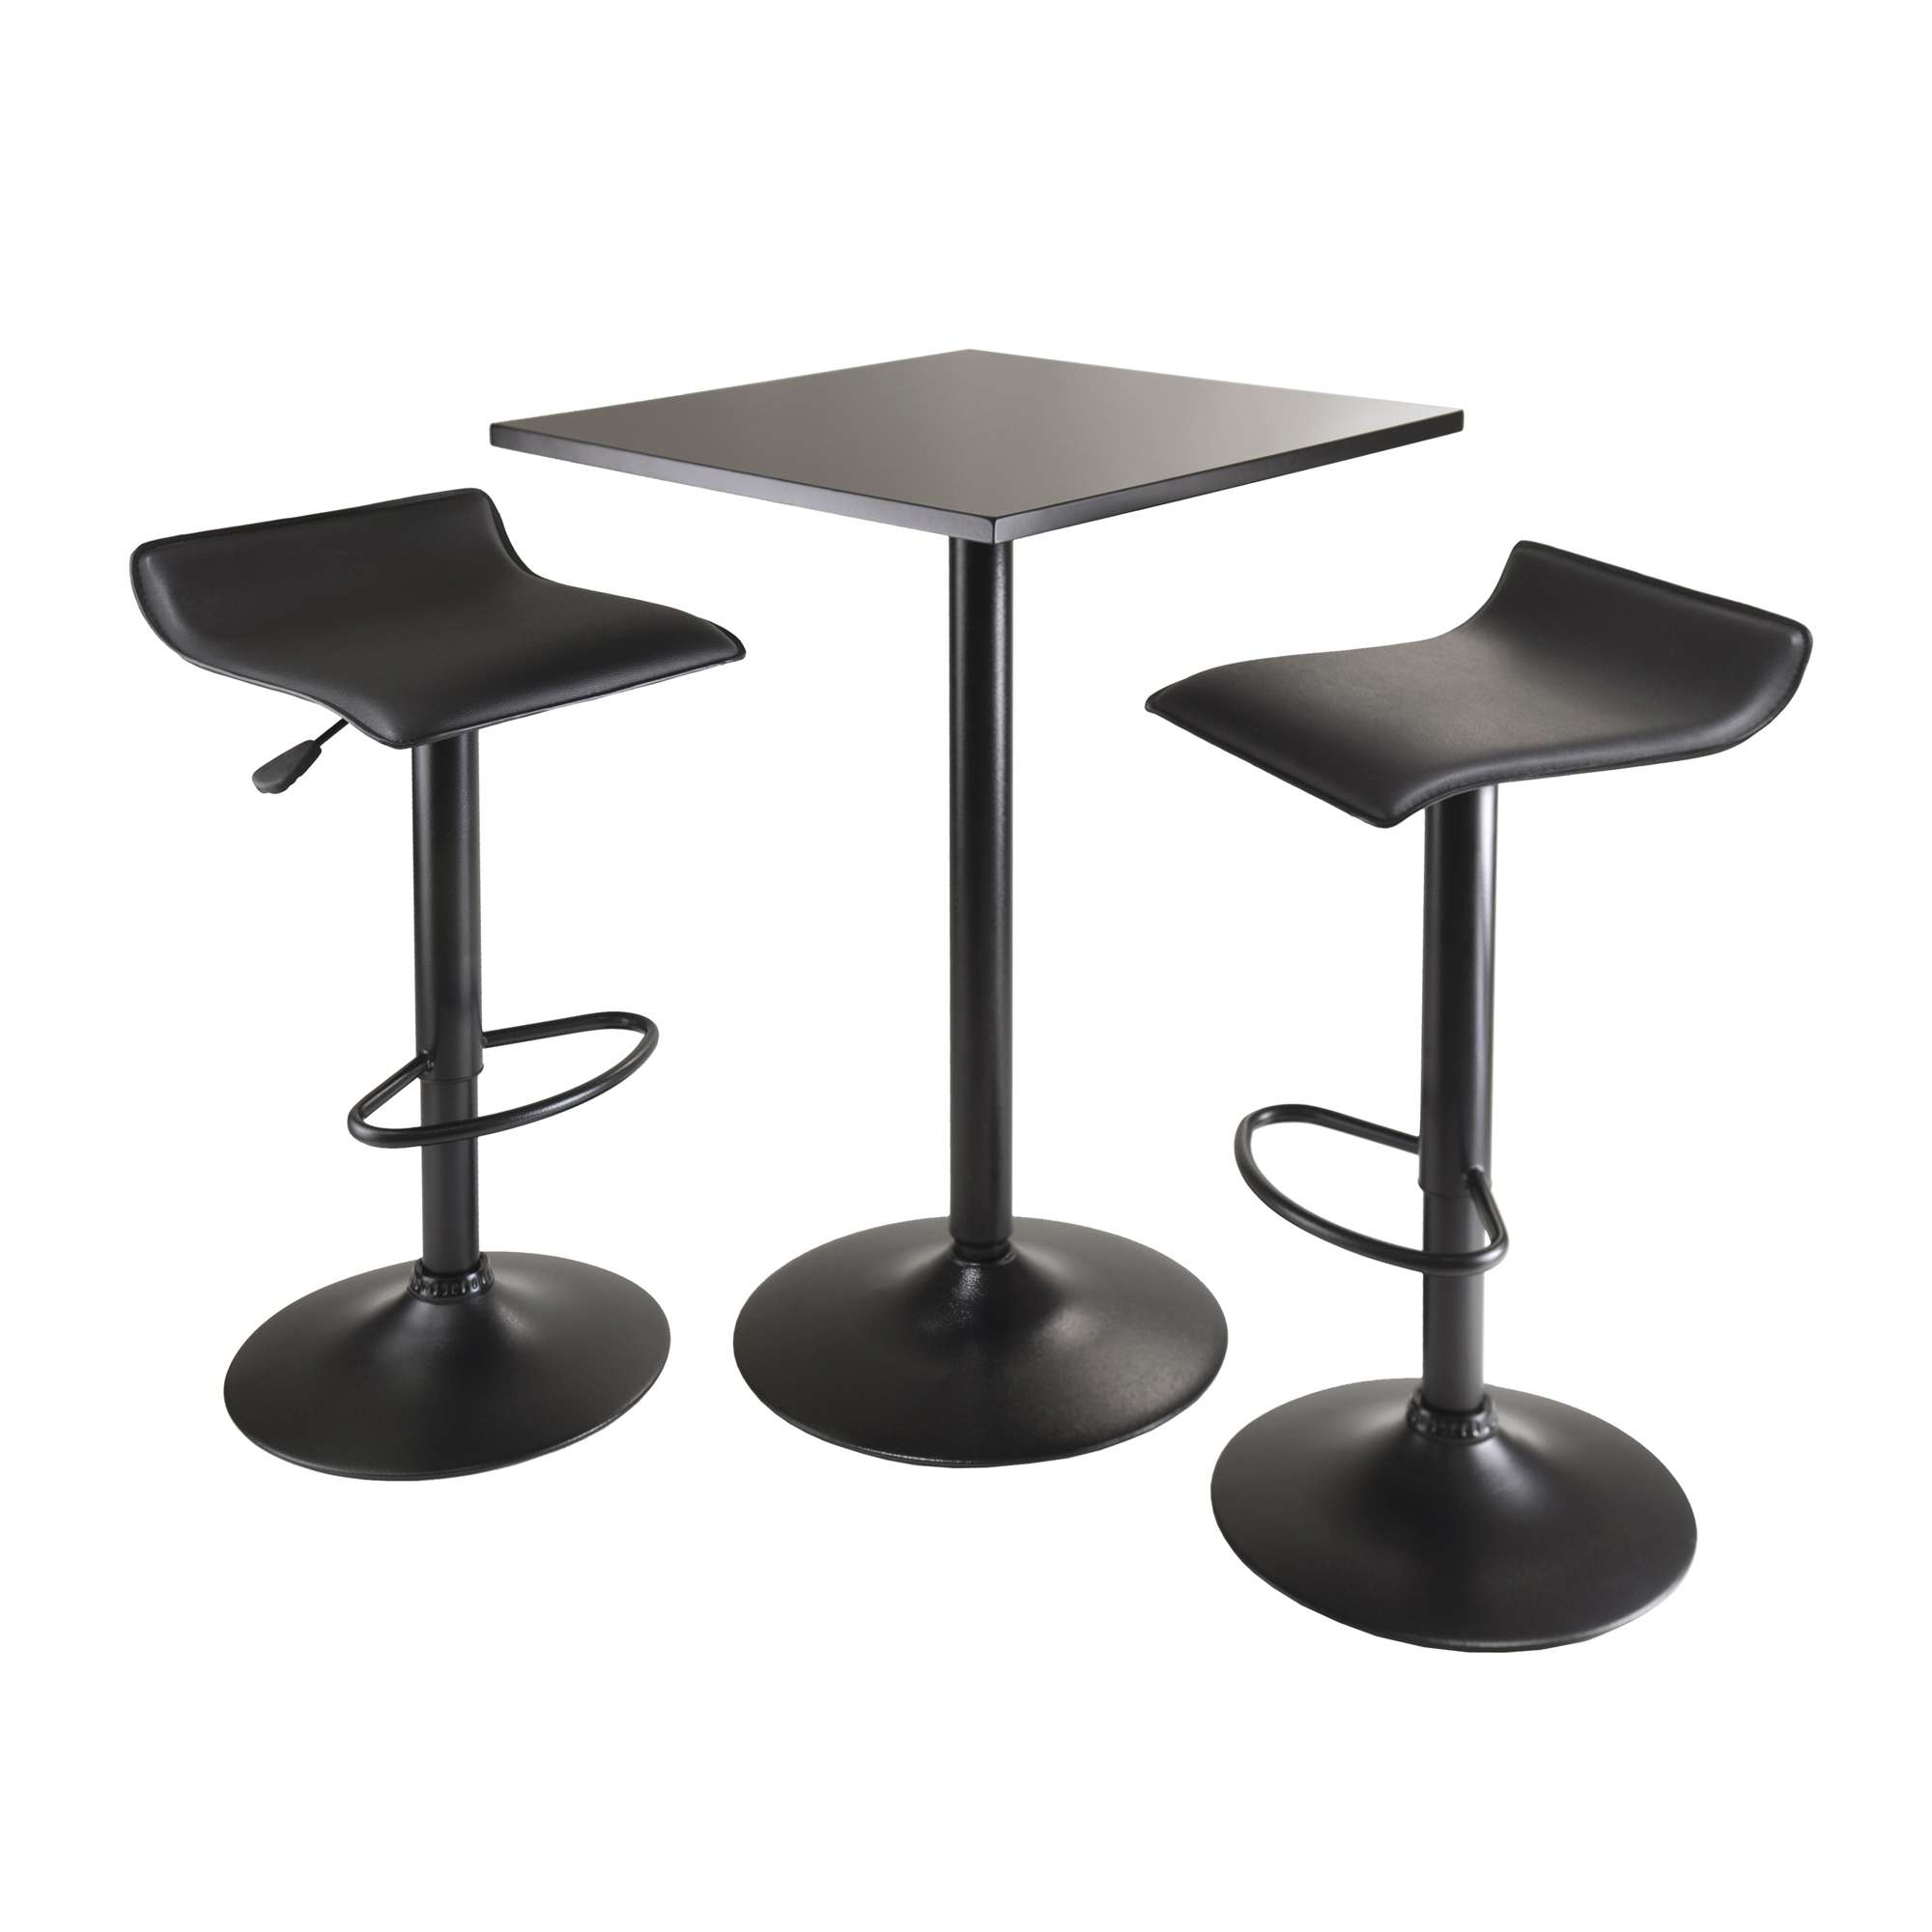 Inspiration about Winsome Wood Obsidian Black 3 Piece Square Table Counter Height Throughout Most Popular Winsome 3 Piece Counter Height Dining Sets (#14 of 20)